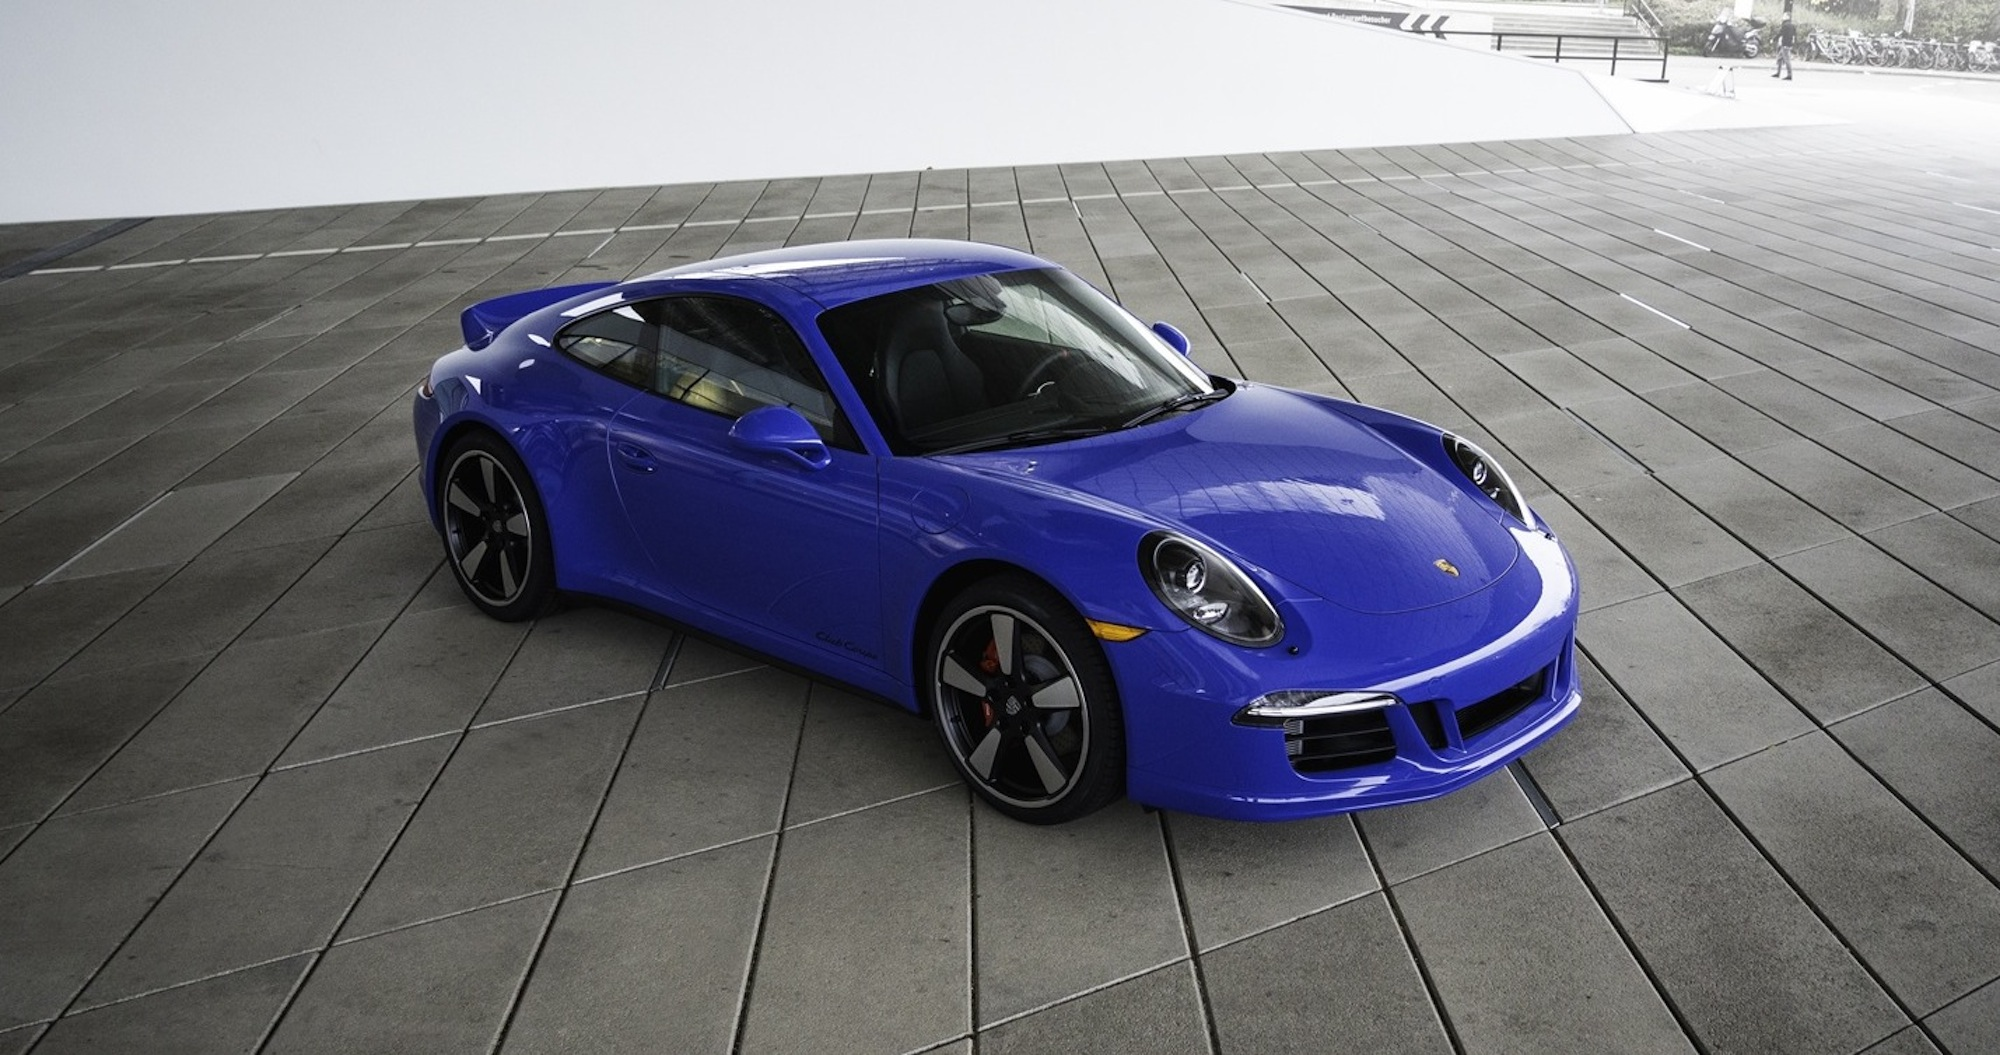 Porsche 911 Gts Club Coupe Limited Edition Model Marks 60